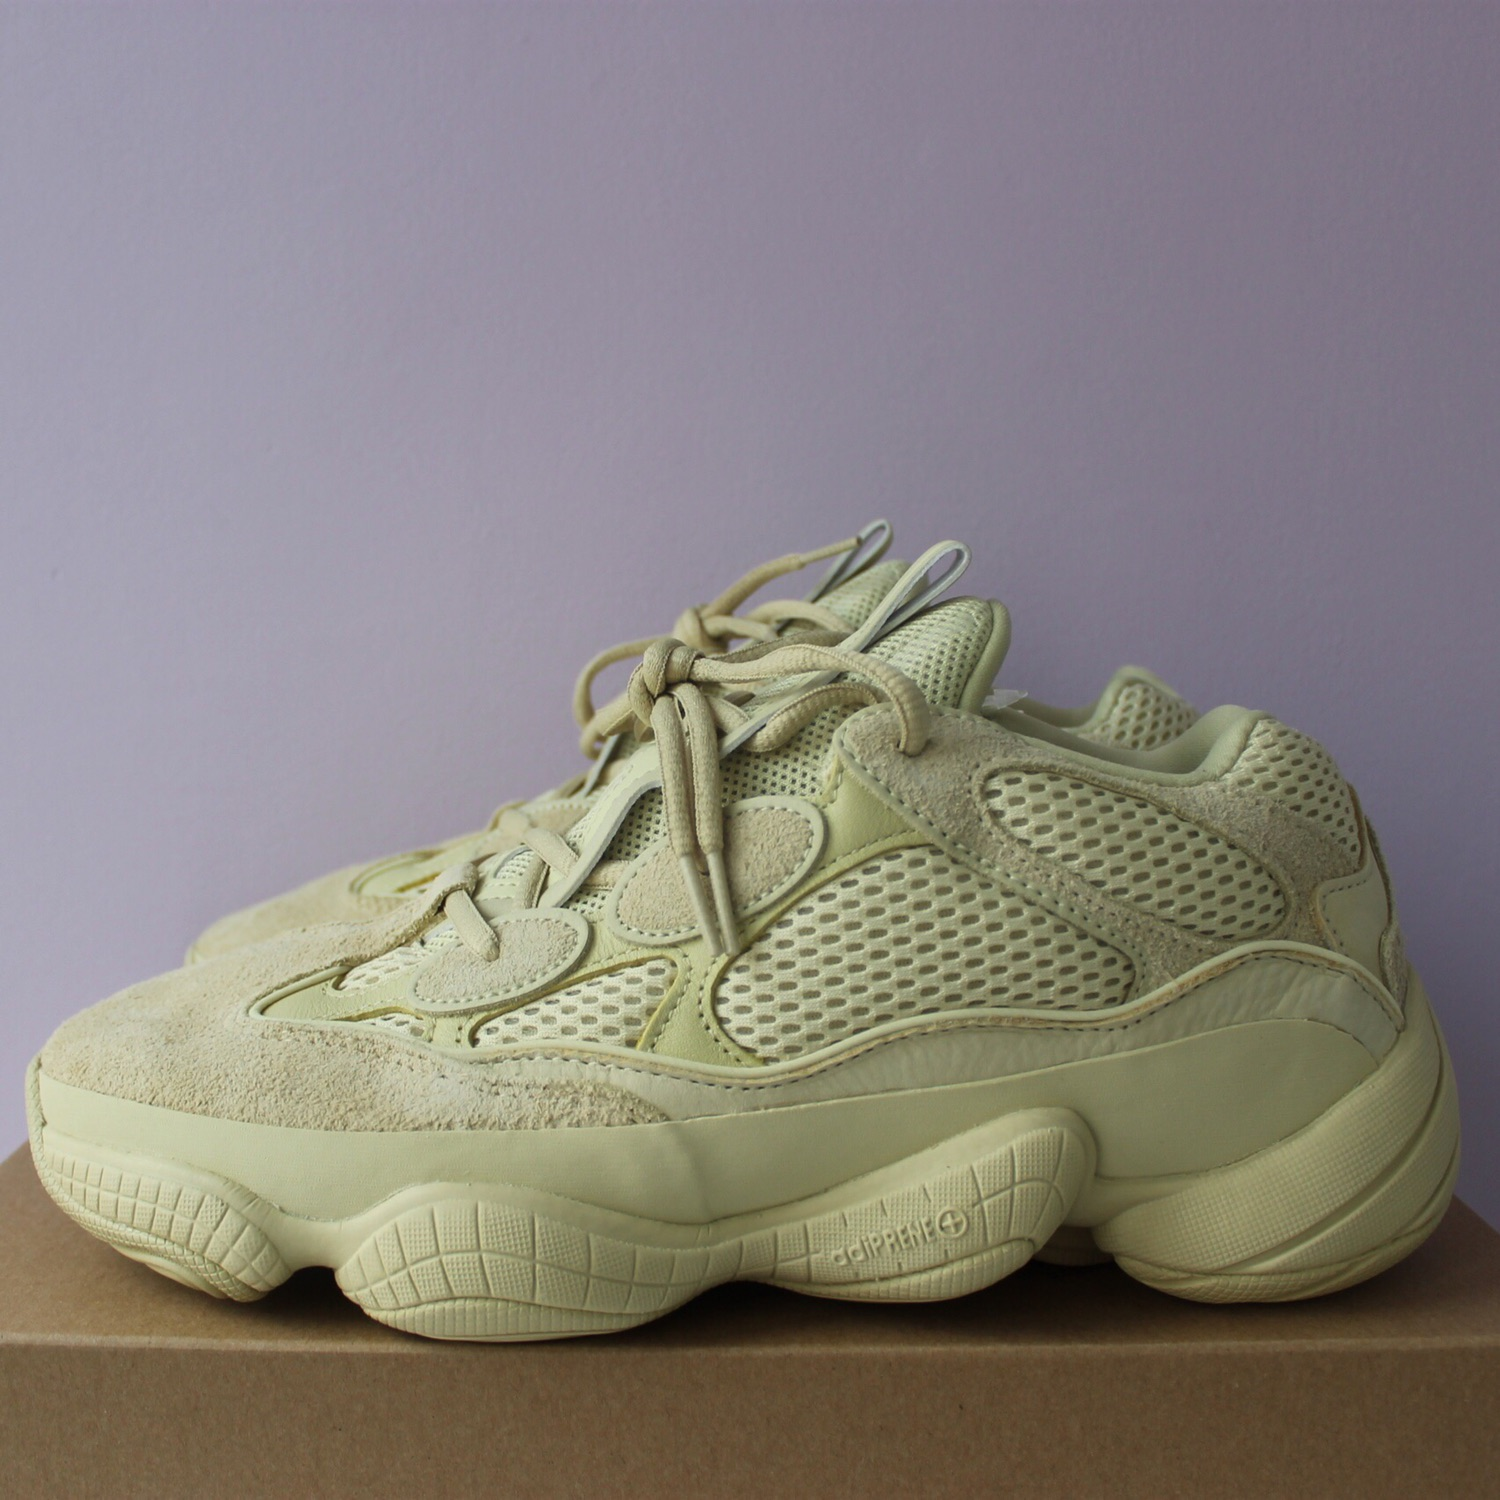 premium selection c0d99 ef0be Adidas X Kanye West Yeezy 500 Supermoon Yellow